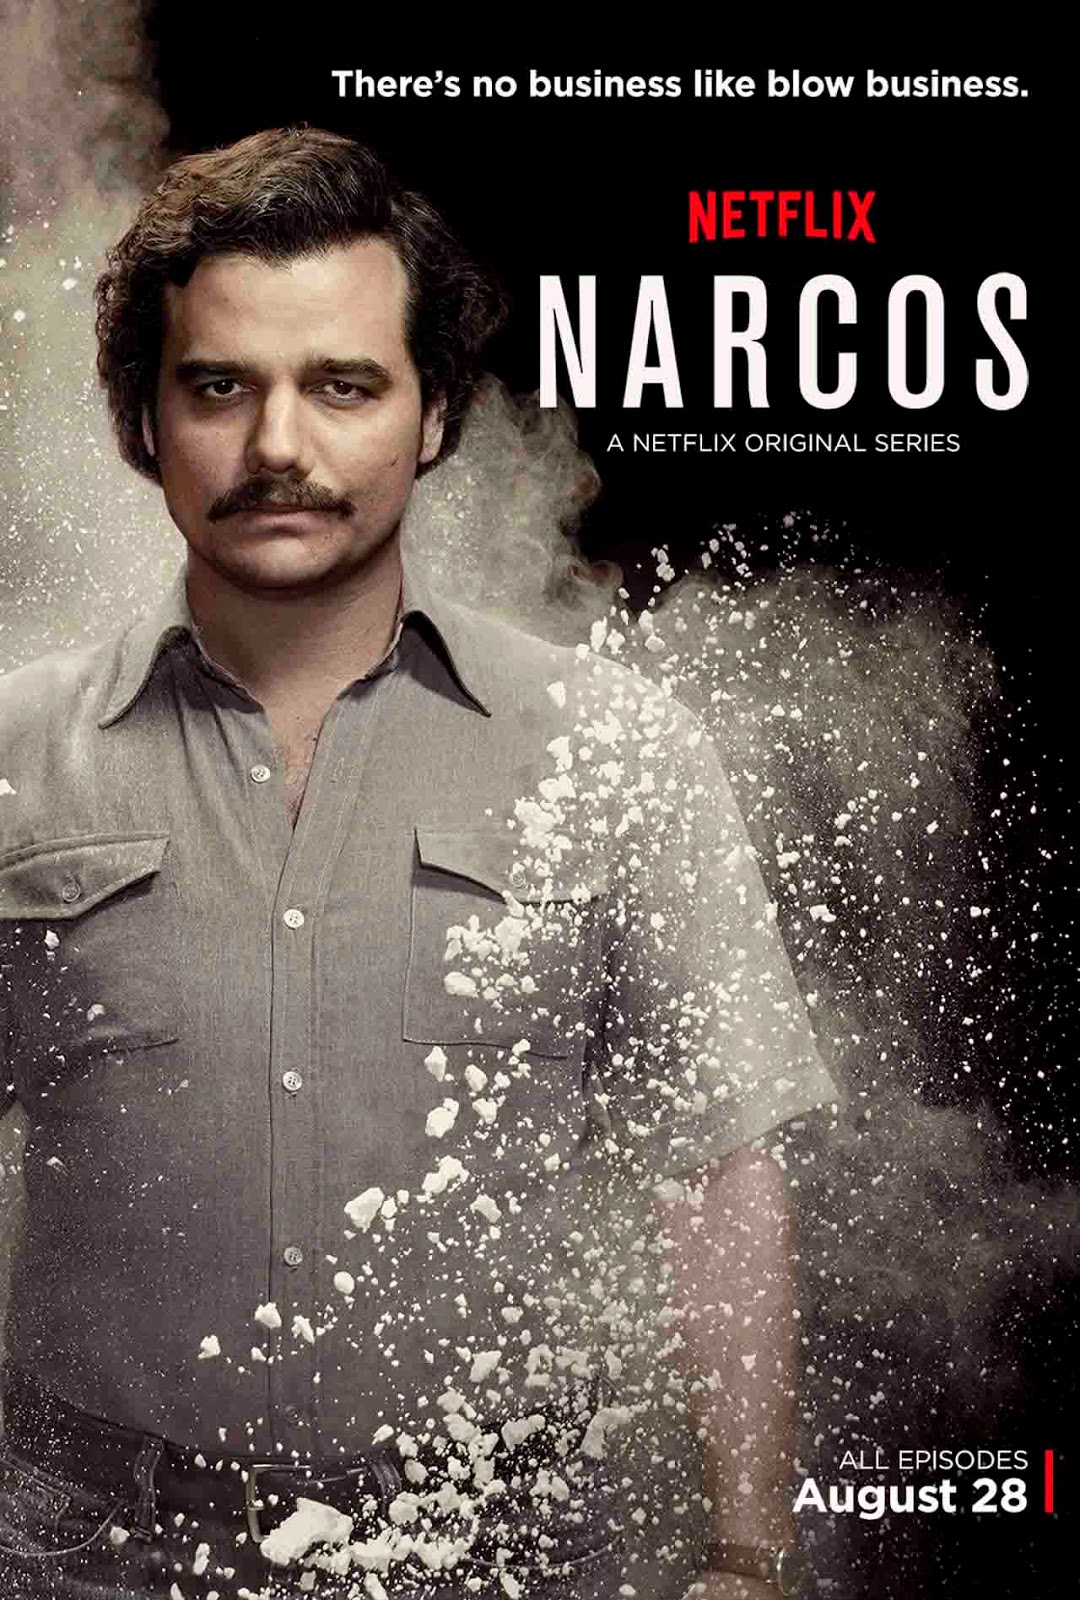 Narcos 1ª Temporada Completa Torrent - WEB-DL 720p Dual Áudio (2015)